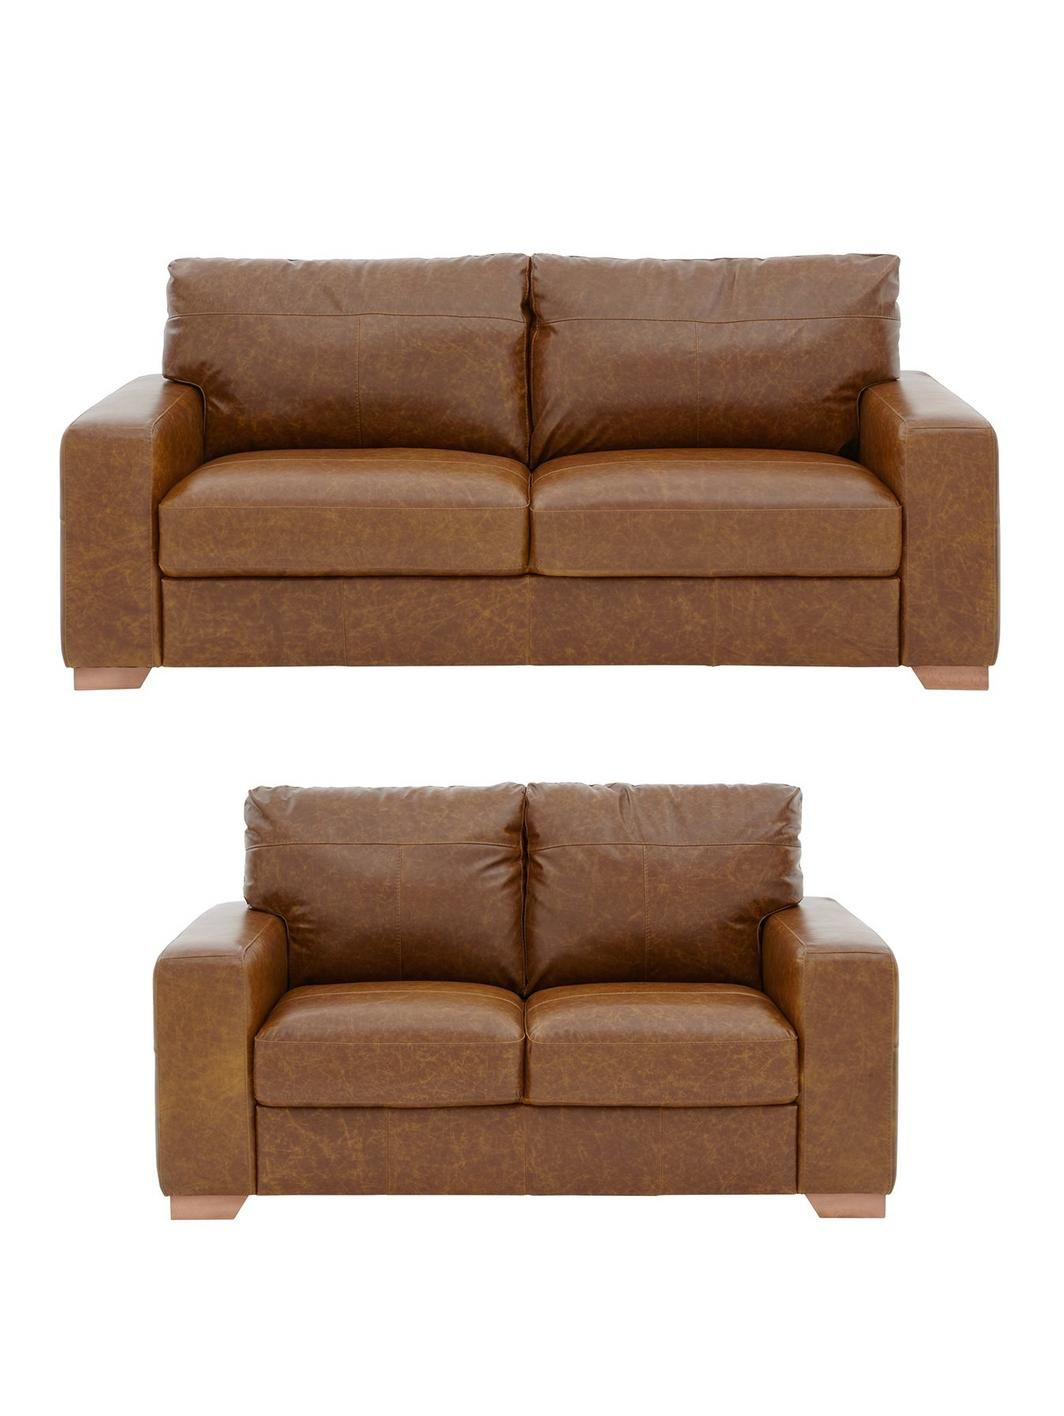 sofa sets online uk ikea with chaise lounge lesina 3 seater 2 premium leather set buy and